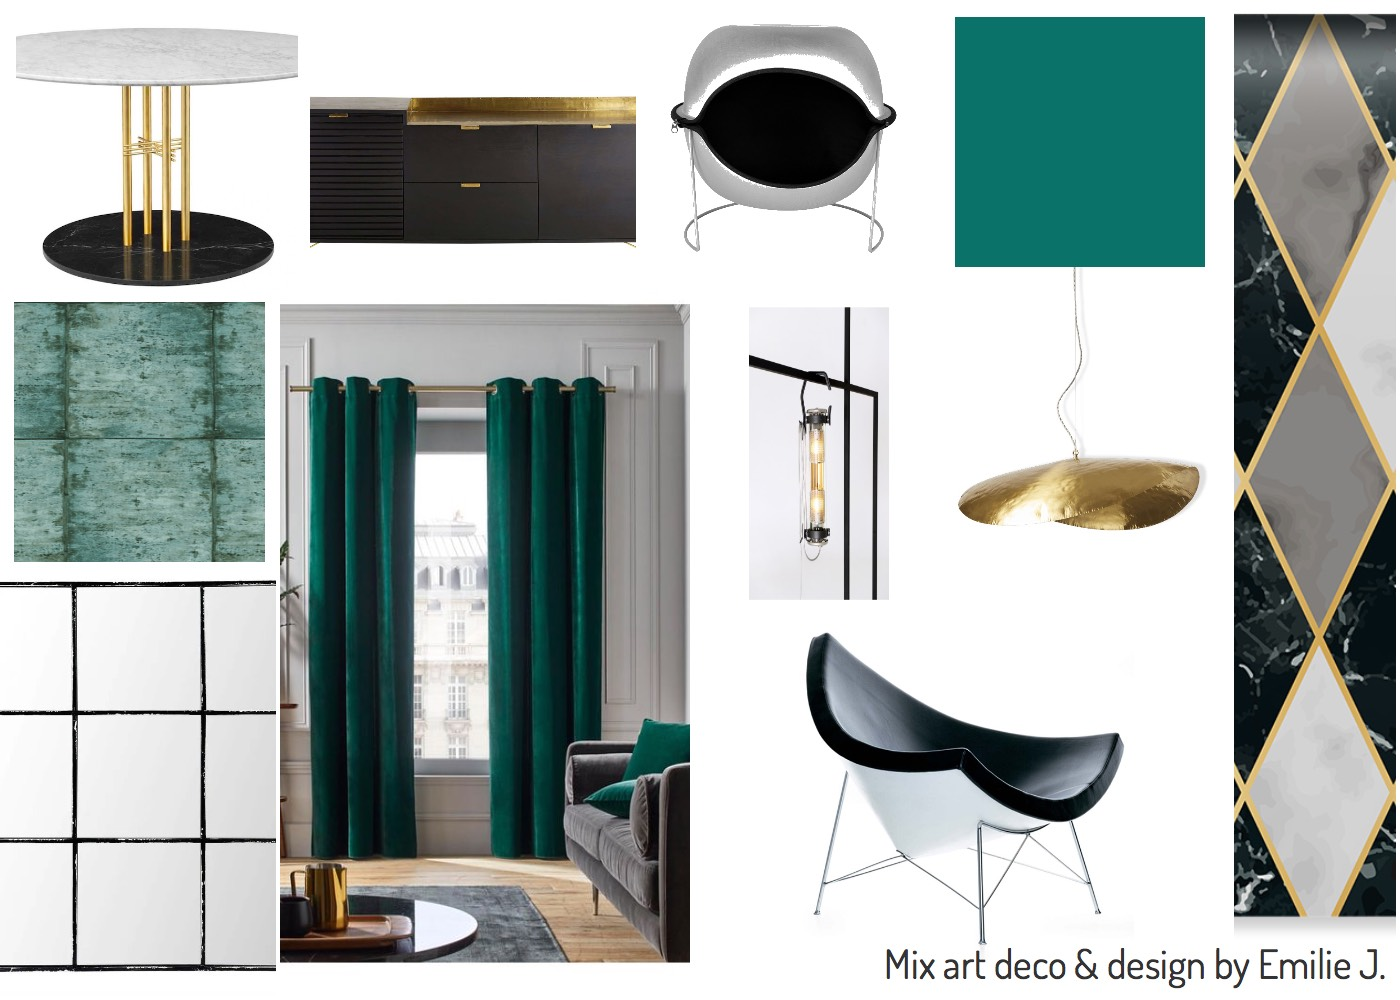 Mix art deco and design styles